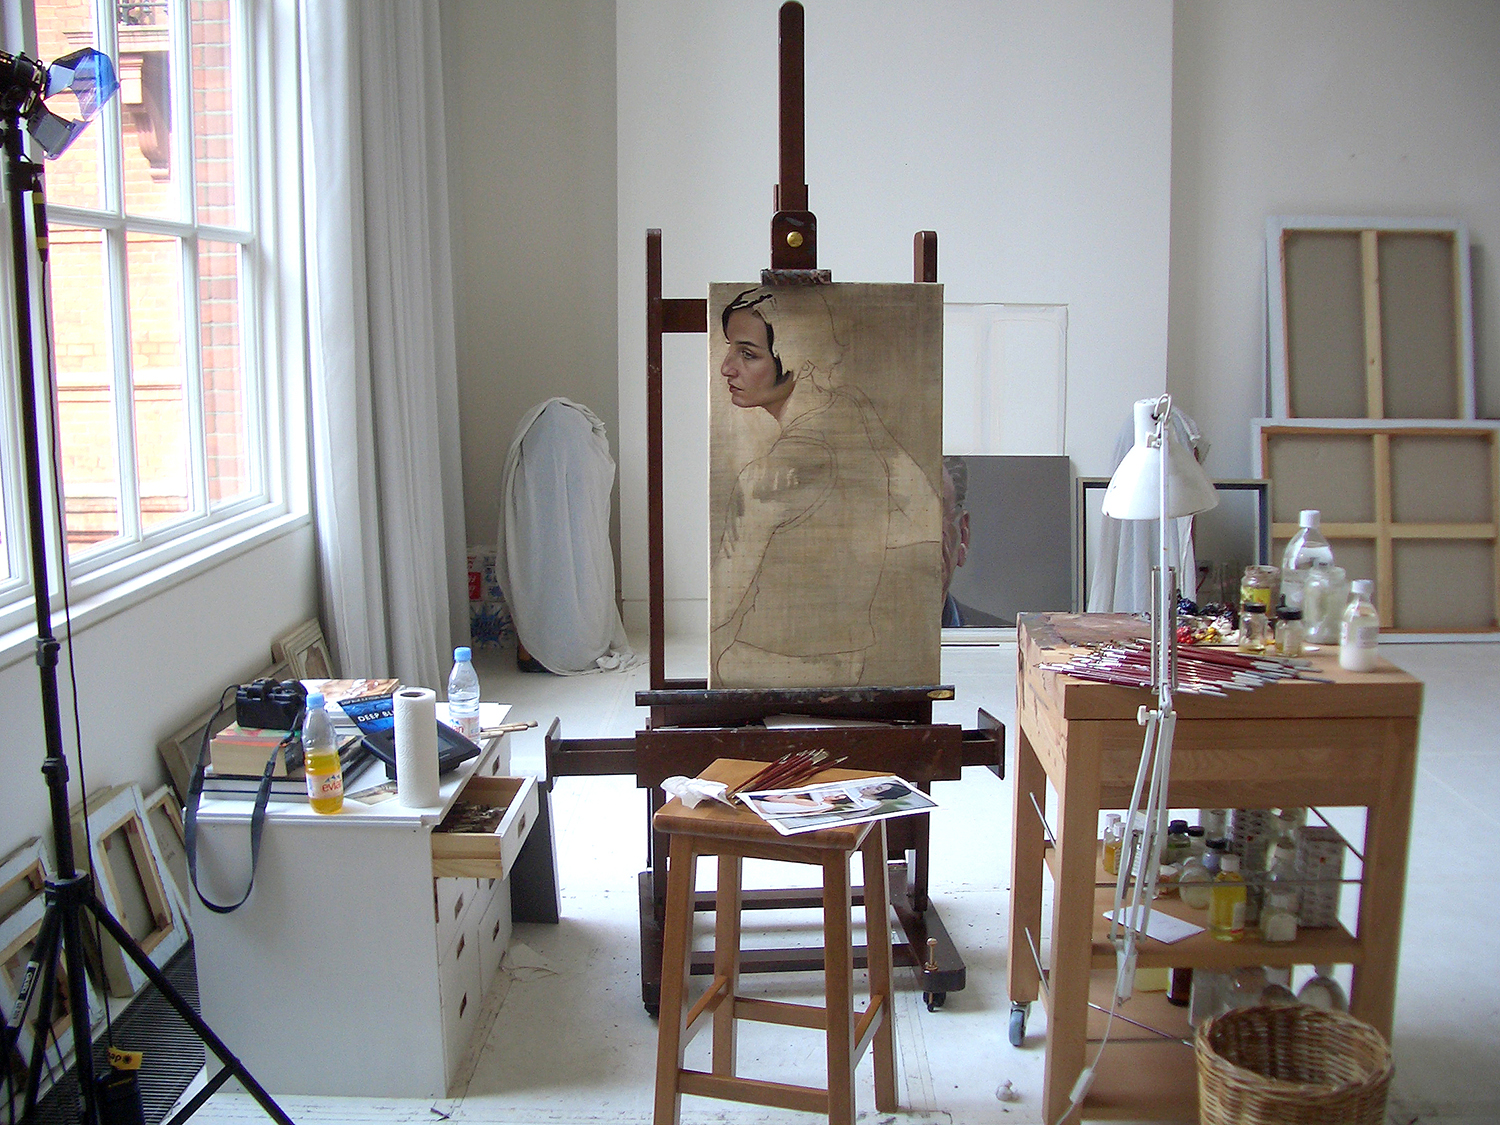 Erin on easel.jpg